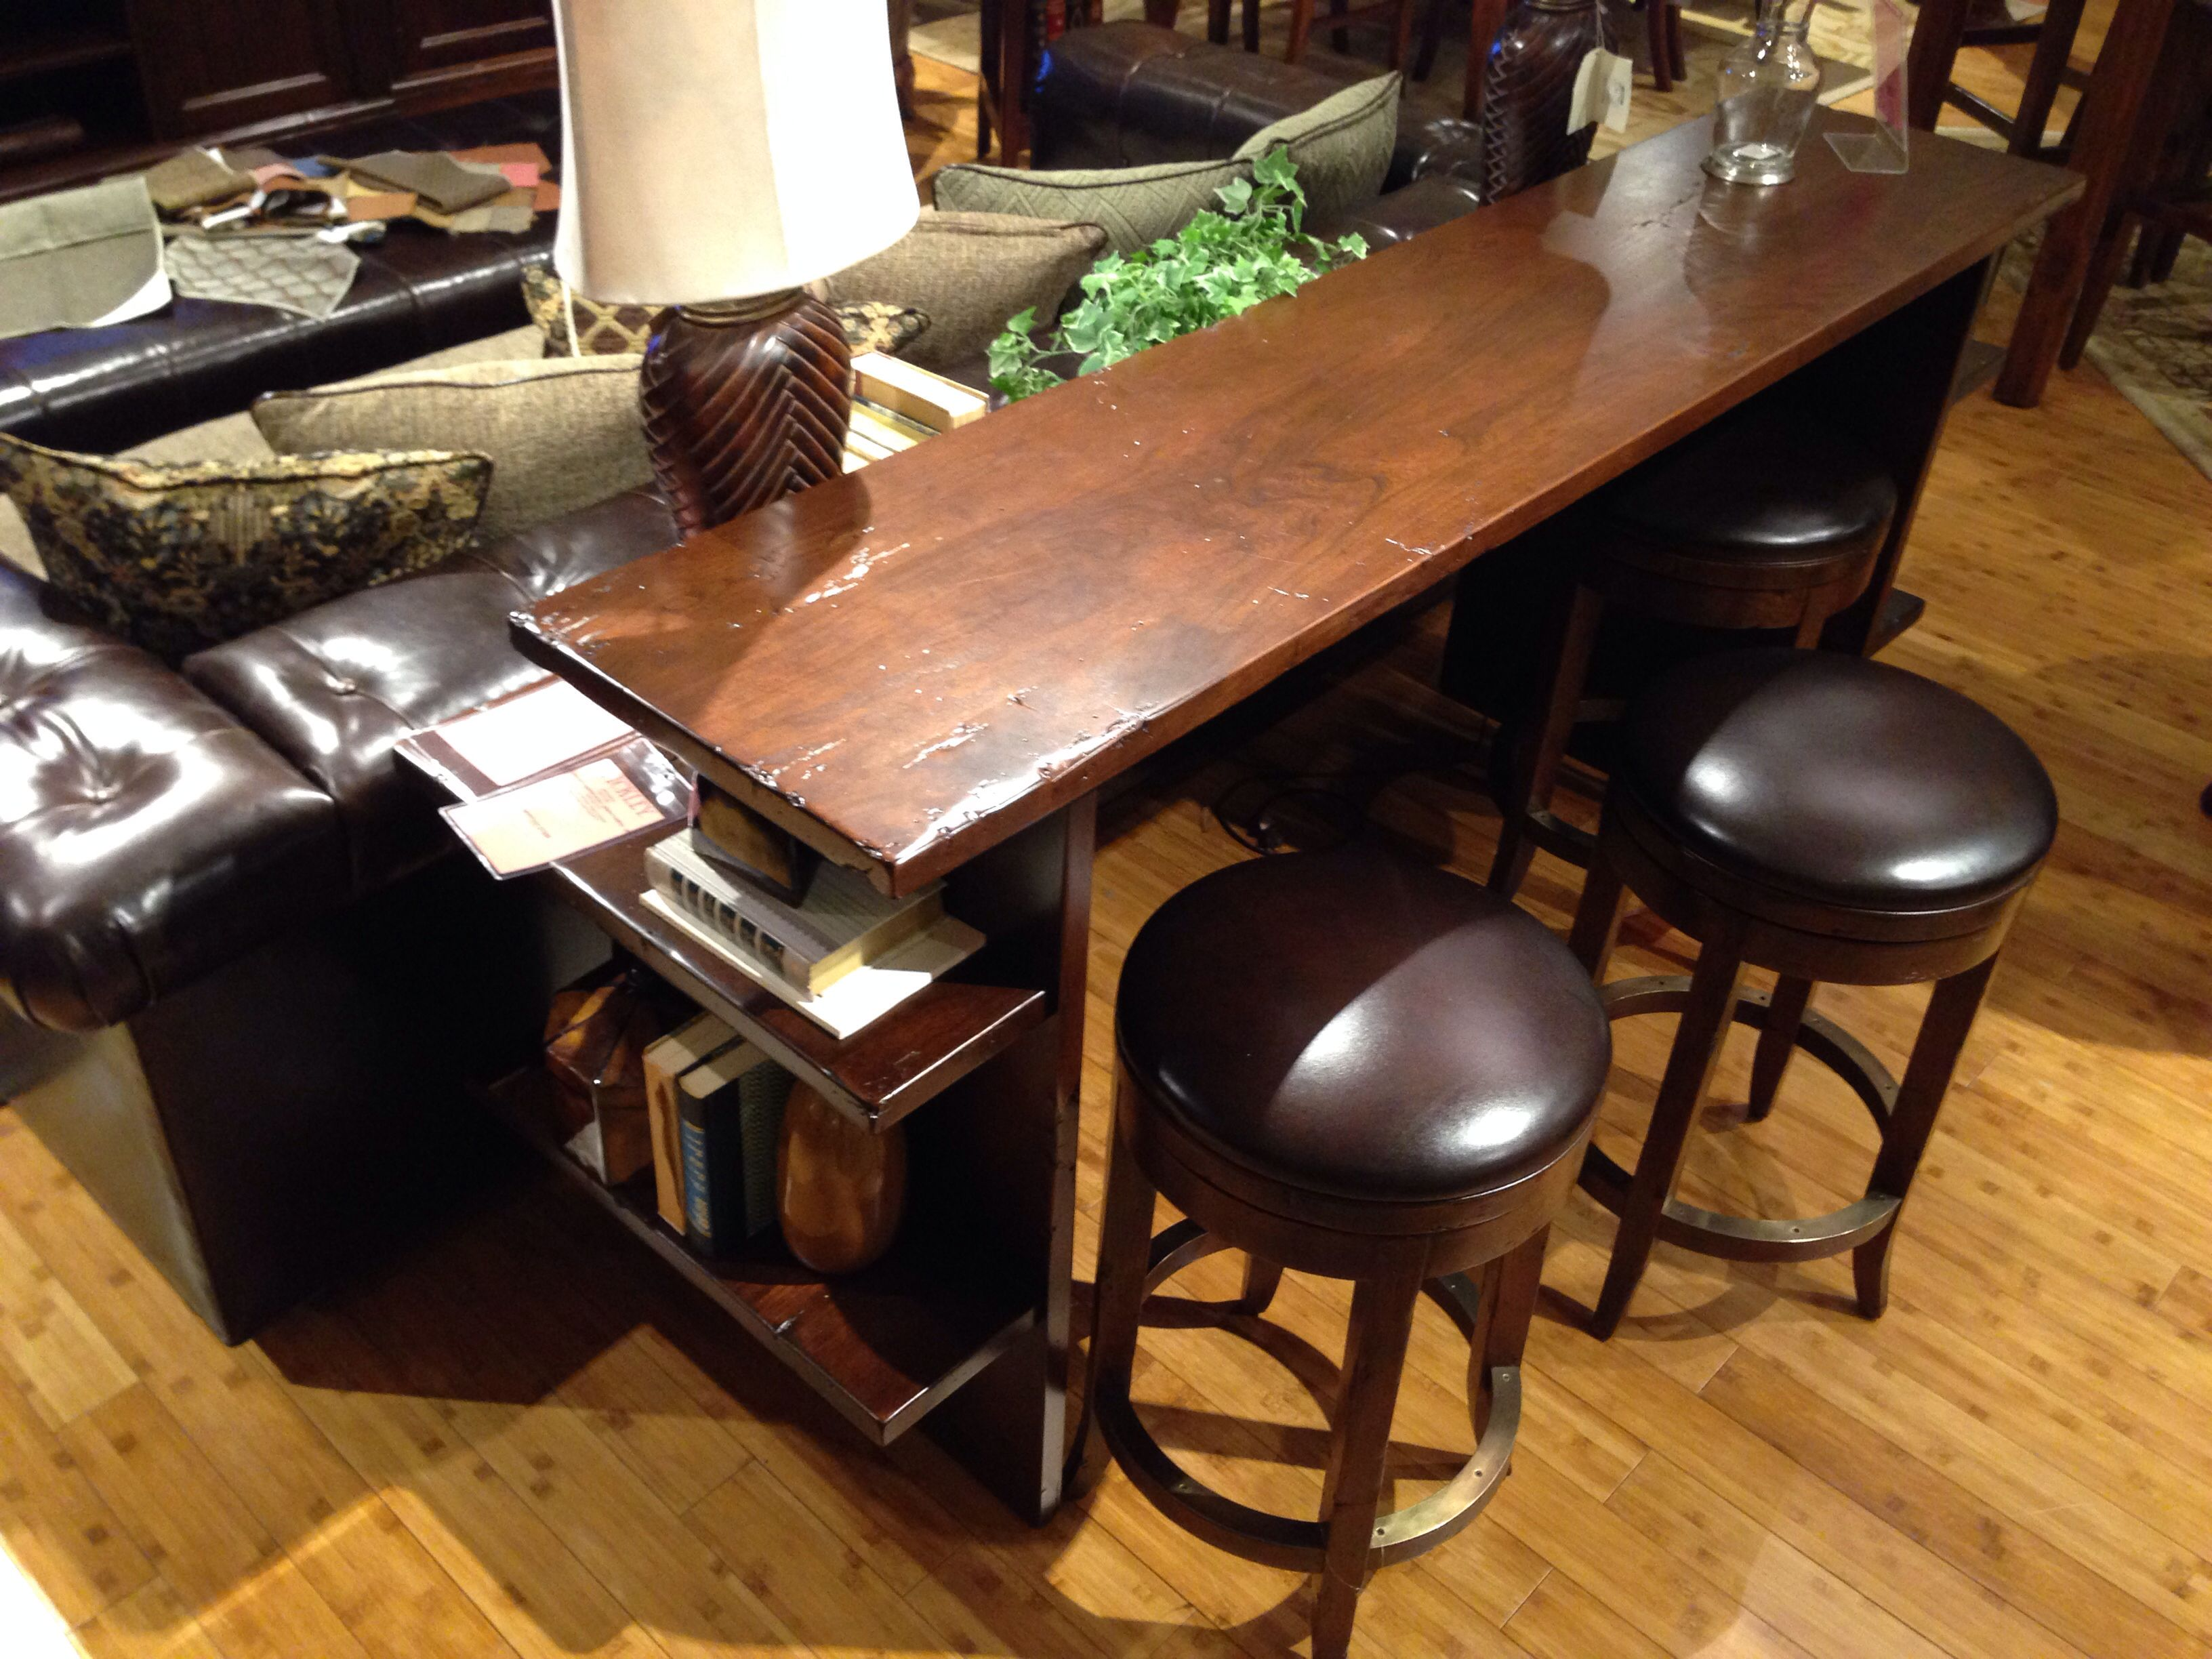 stickley gathering island doerrfurniture doerrfurniture com stickley gathering island doerrfurniture doerrfurniture com